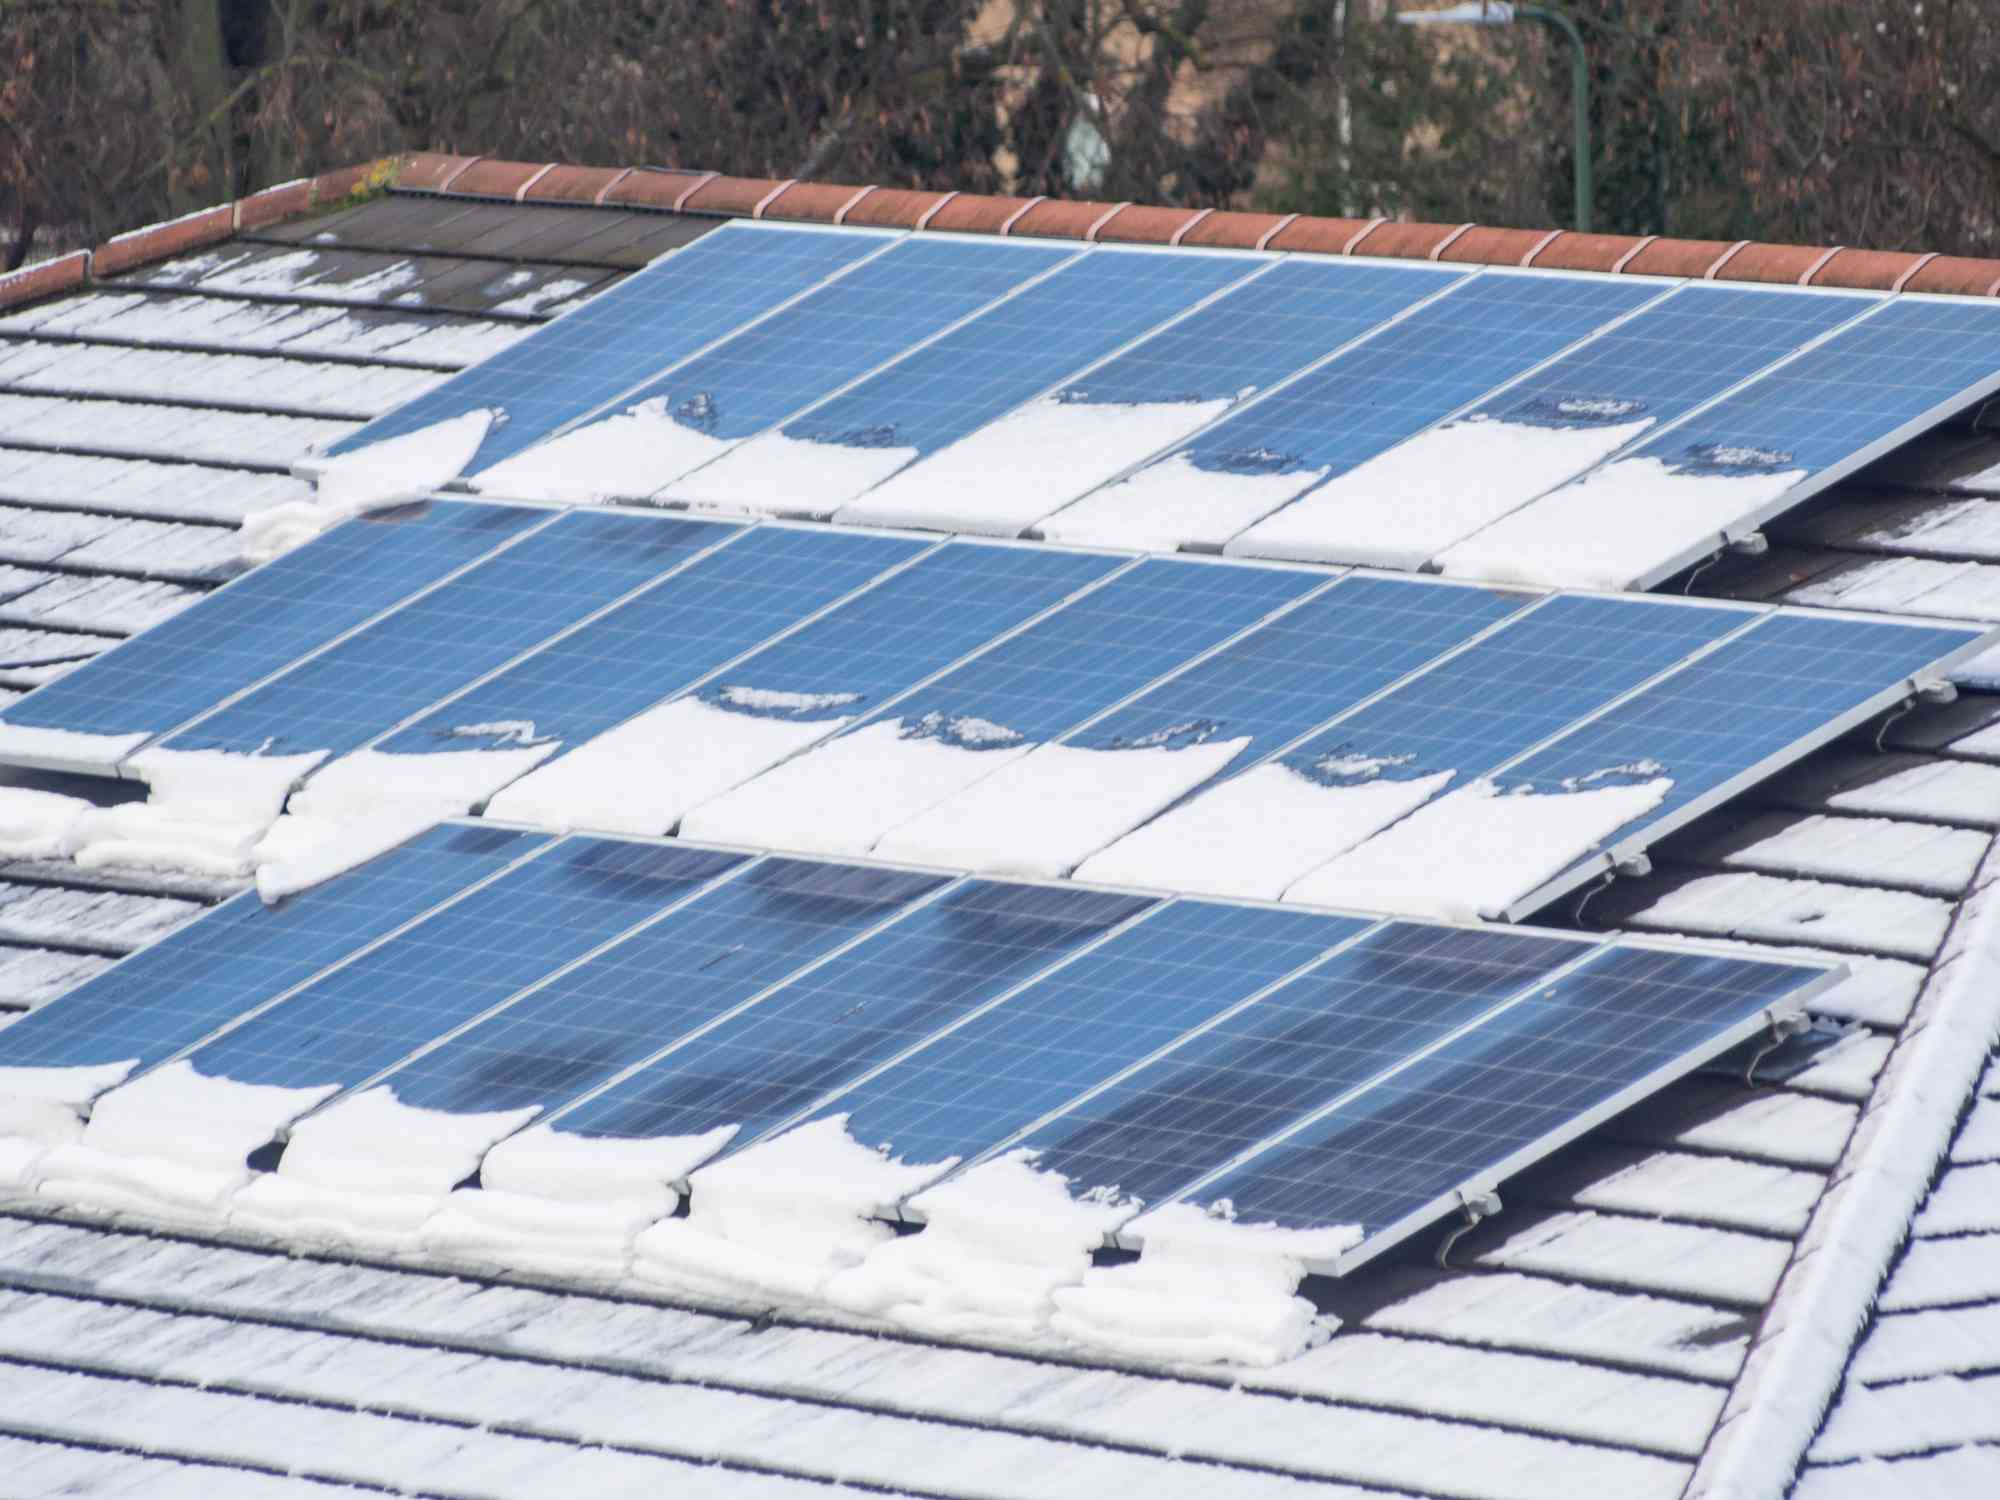 Solar panels on residential roof with snow